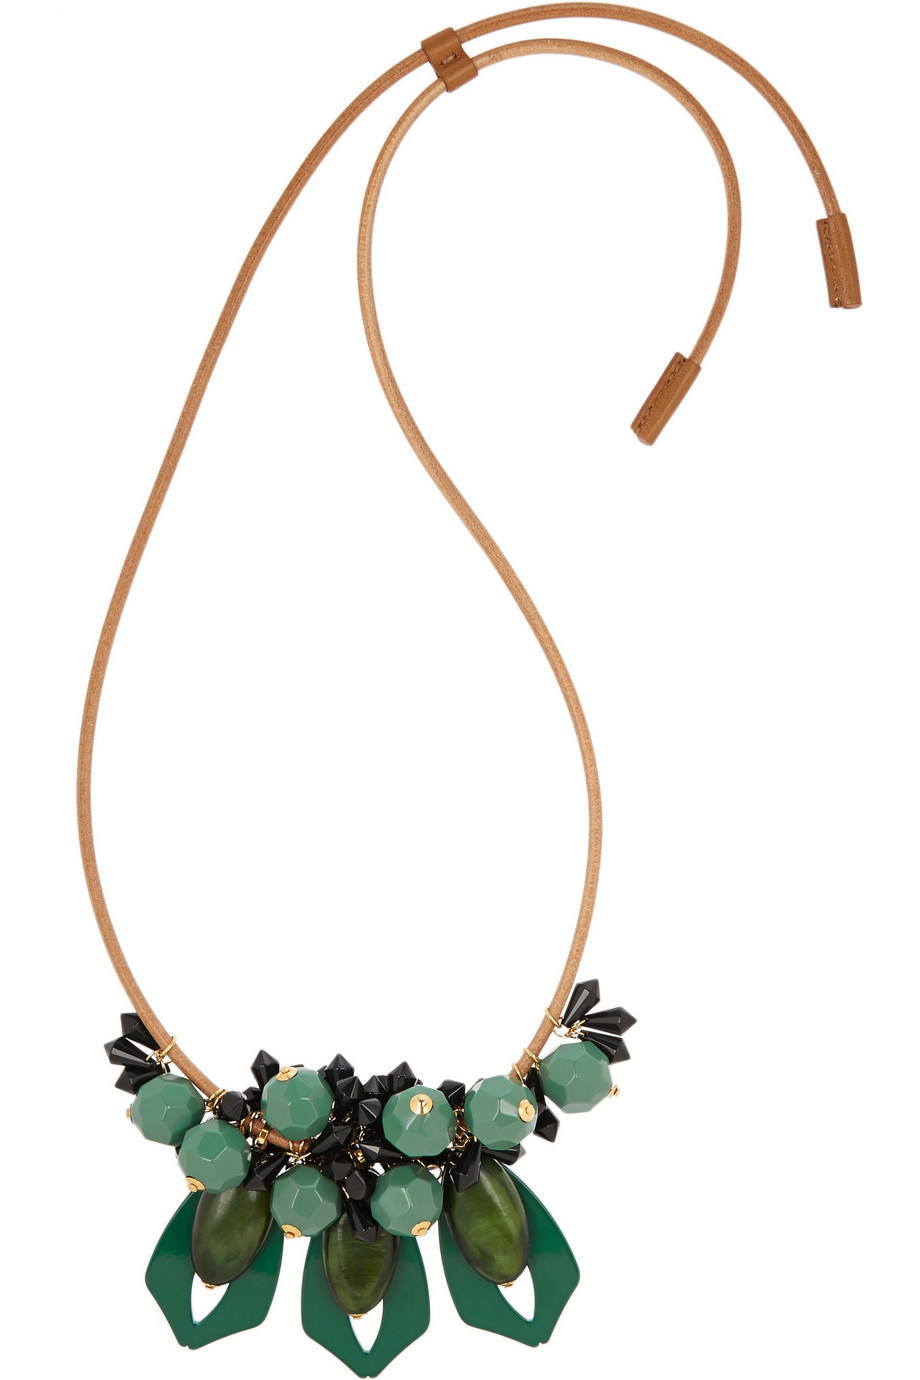 Marni Beads Necklace in Tea Green Resin XRX3mZ